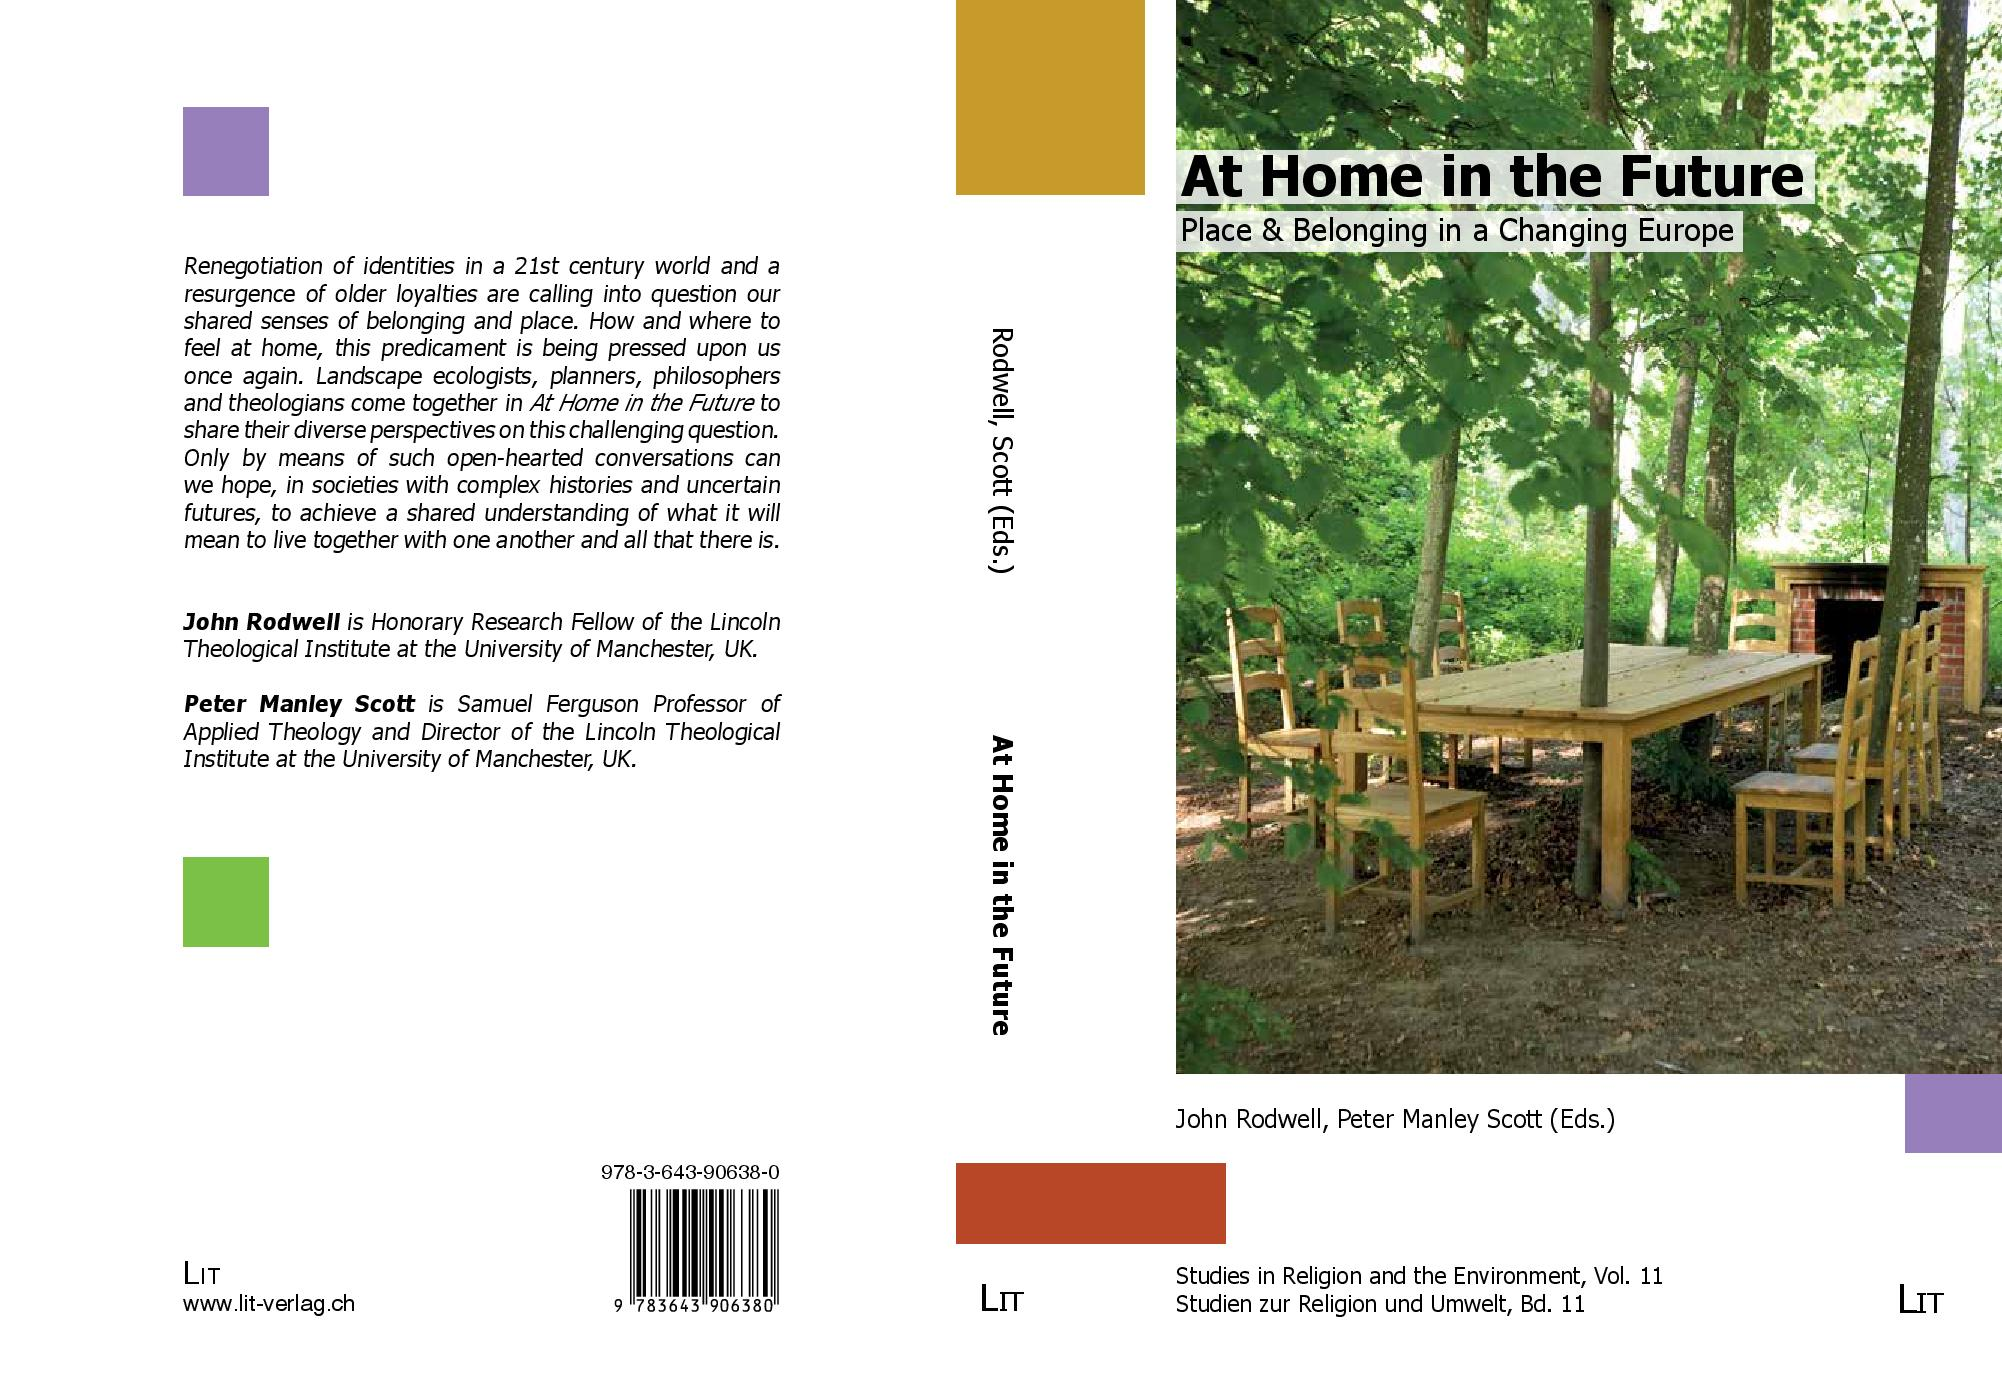 at home in the future essays from the heimat project published at home in the future essays from the heimat project published blog lincoln theological institute